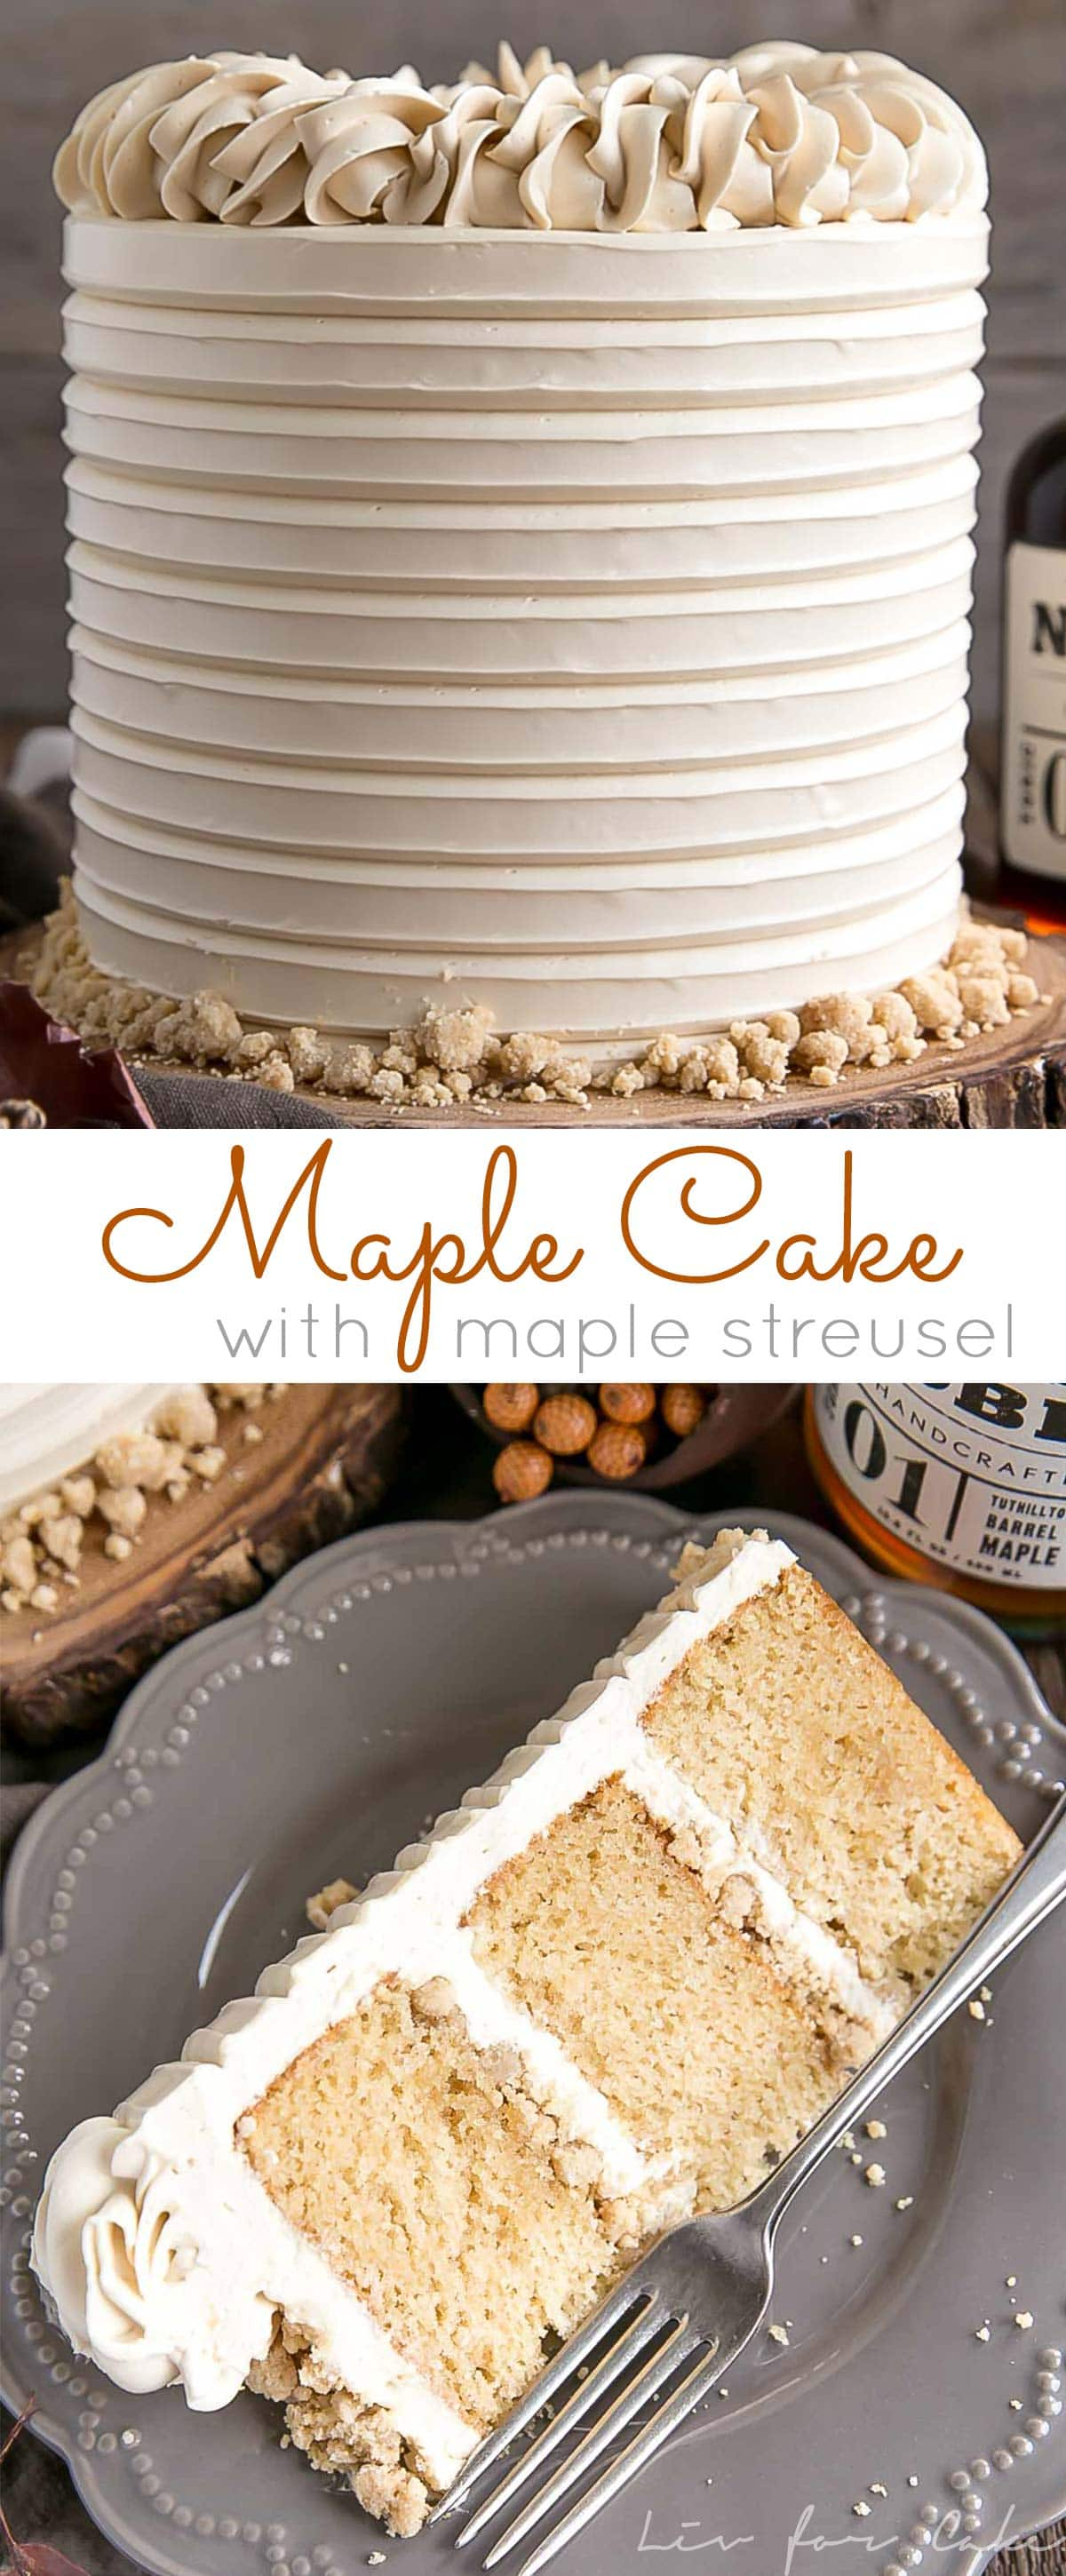 This Maple Cake is packed with pure, natural maple flavour throughout. Maple cake layers with a maple buttercream and maple streusel.